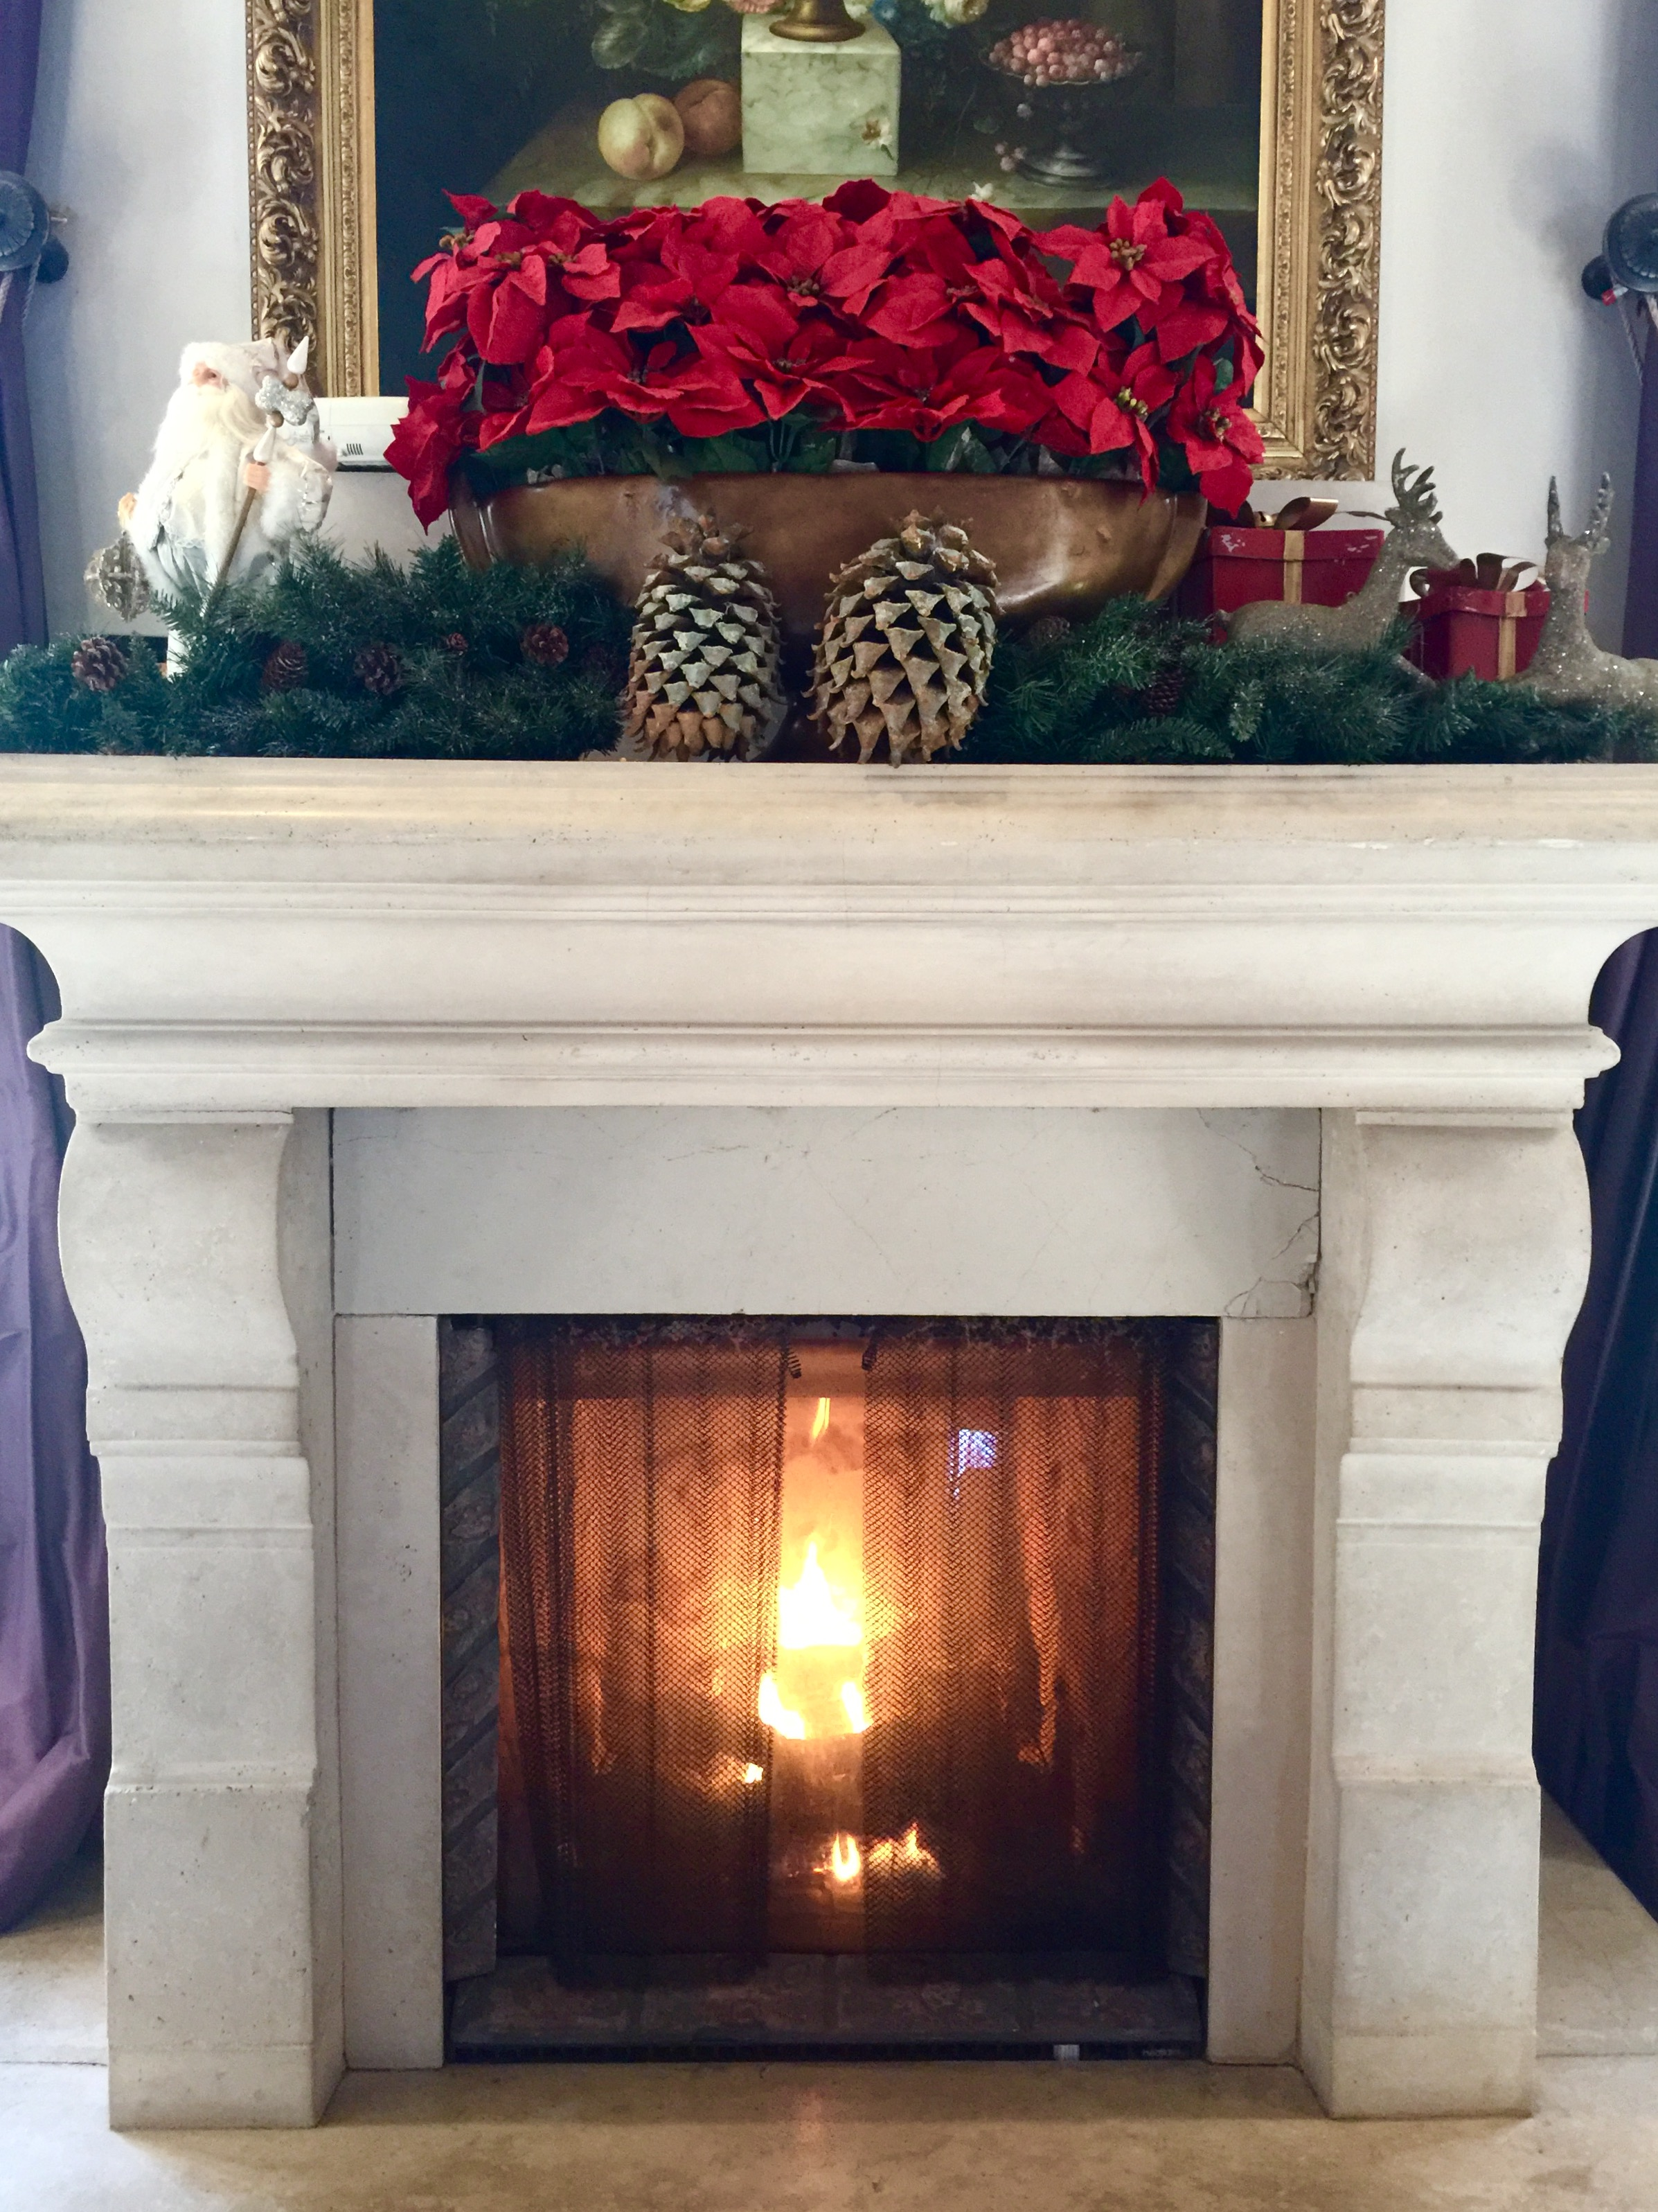 Fireplace Christmas decor - The Culver Hotel, Los Angeles